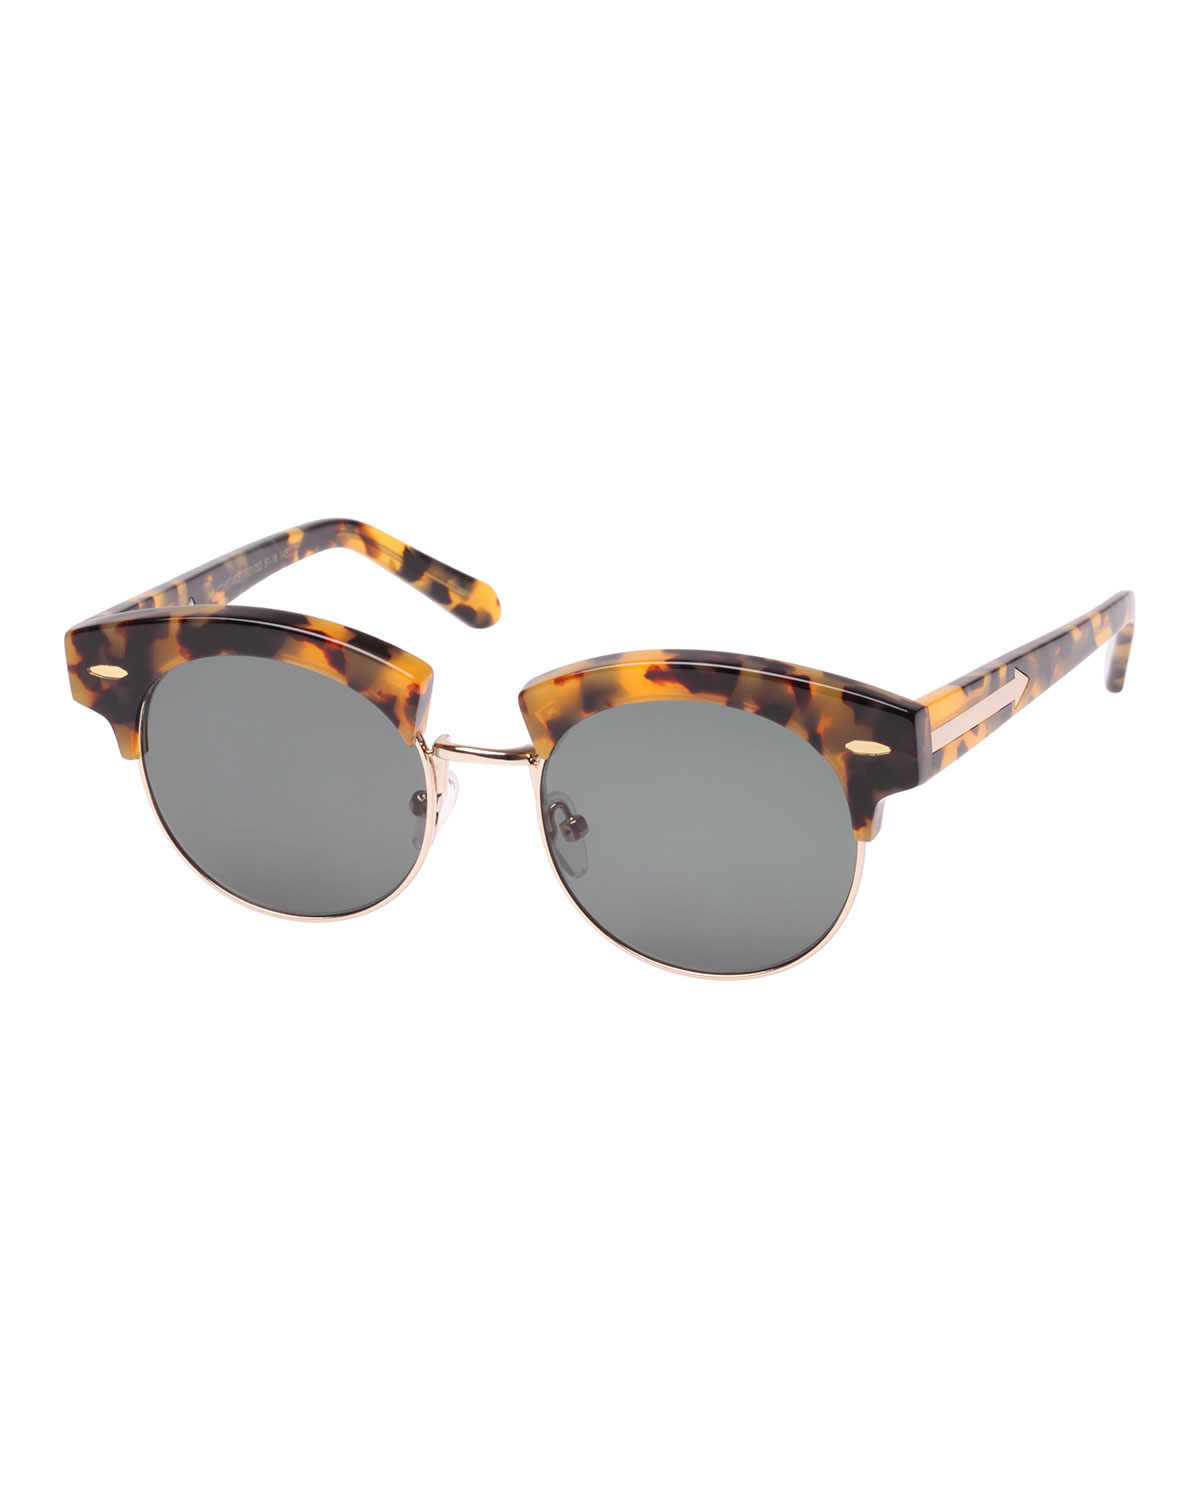 The Constable 51Mm Sunglasses - Crazy Tortoise in Crazy Tort/Green Mono